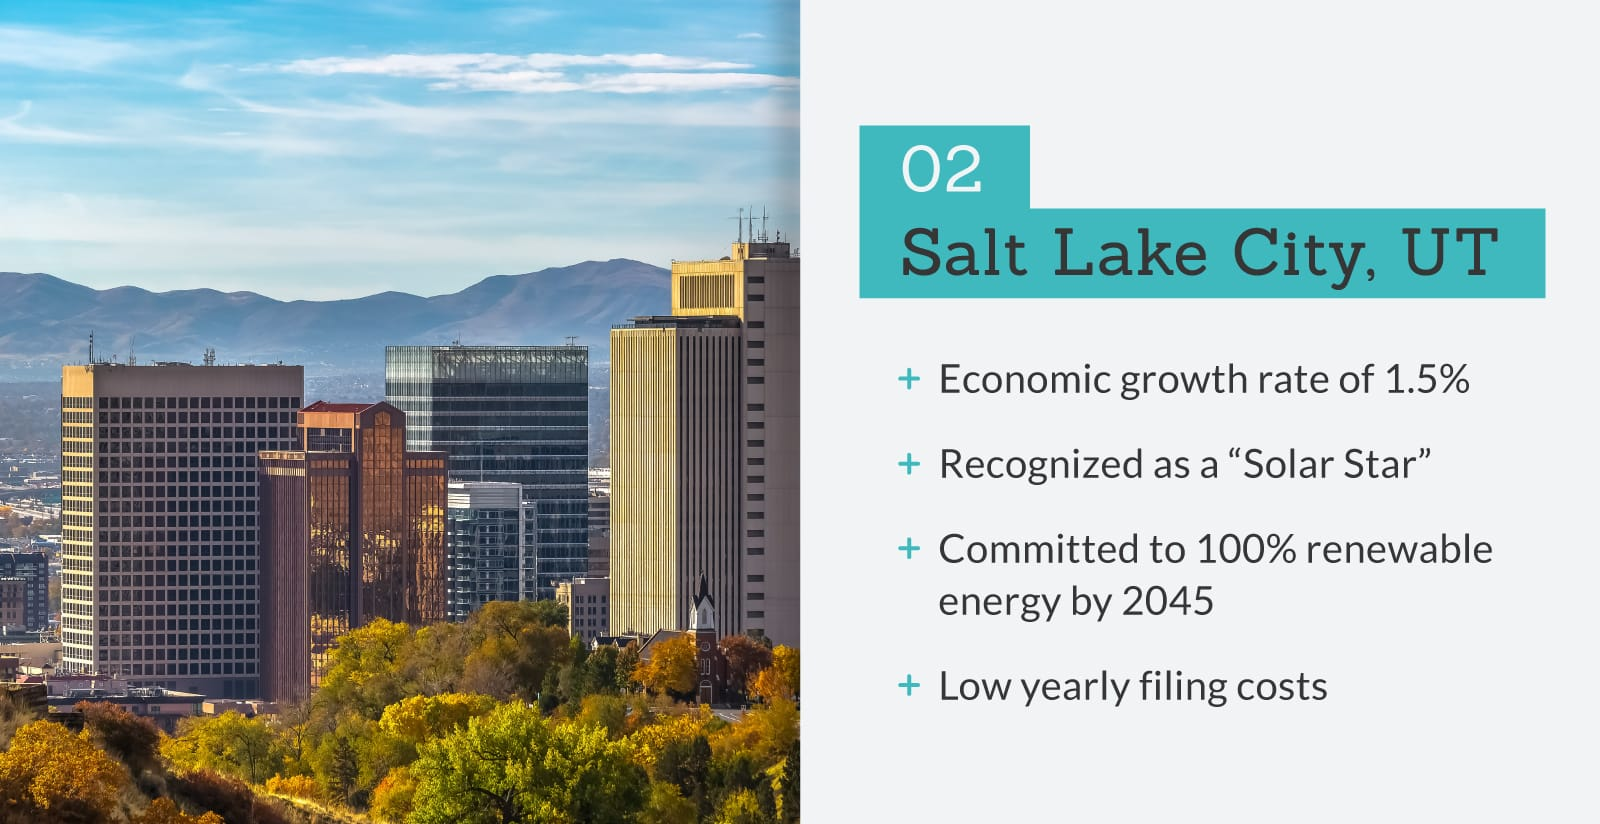 picture of Salt Lake City, UT with stats.